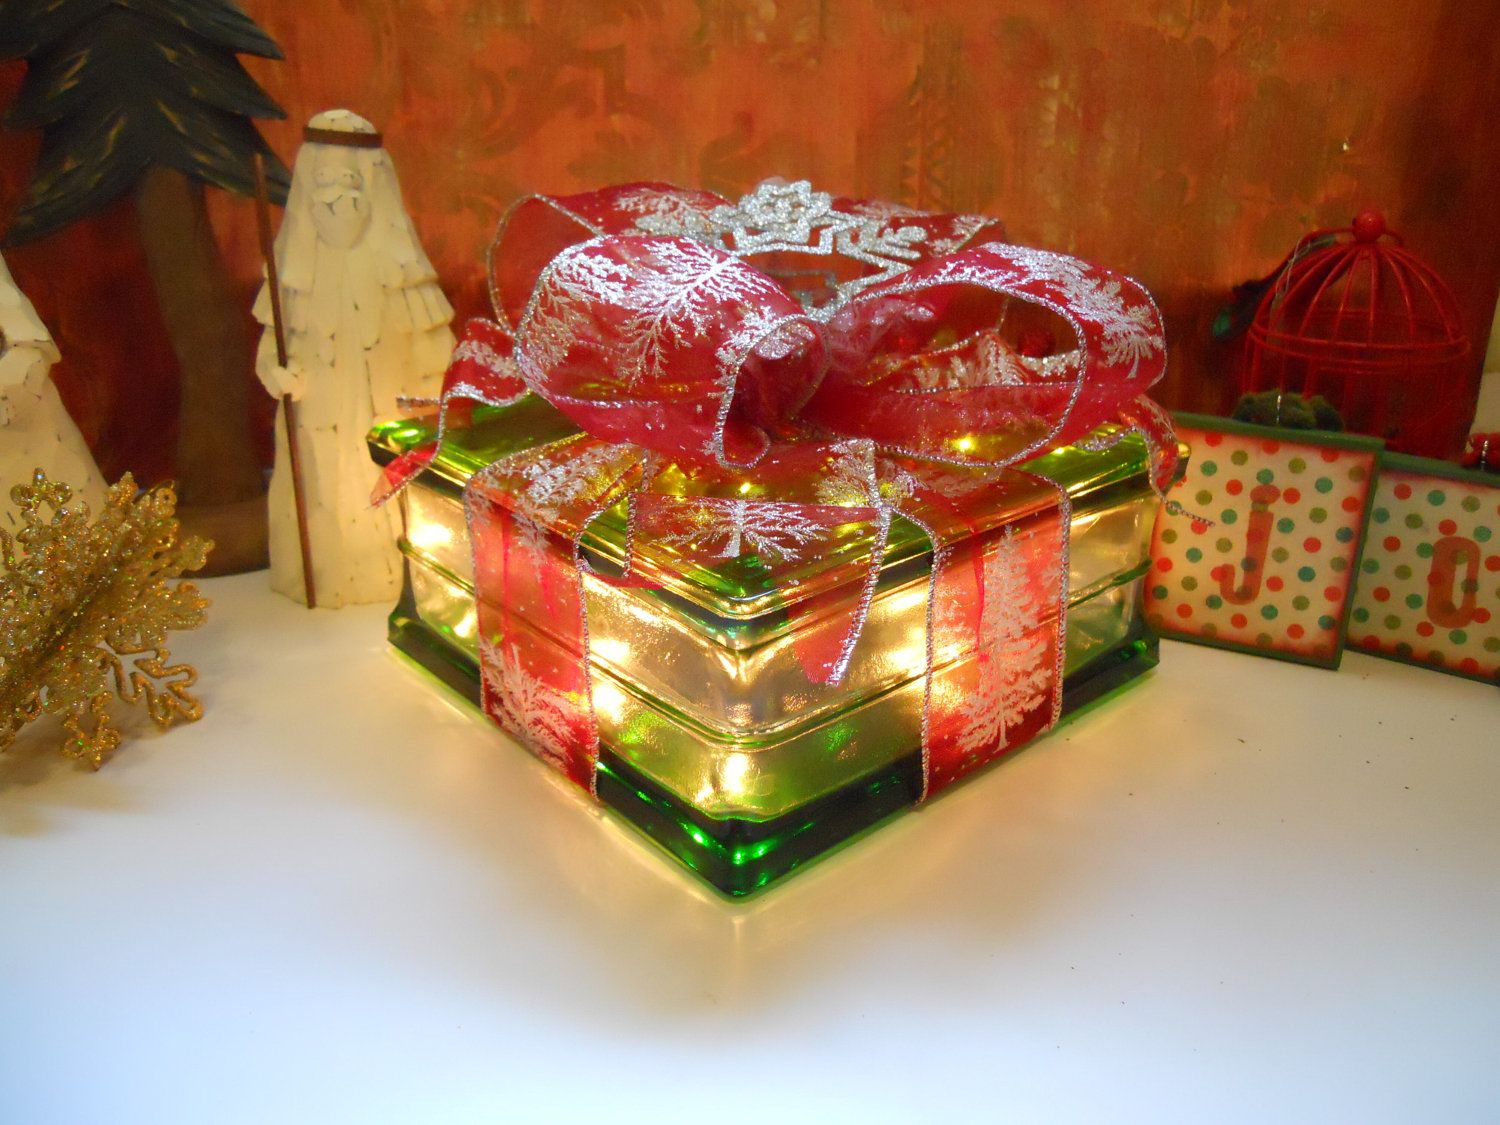 19 ideas for christmas decorated glass blocks - Glass Block Christmas Decorations